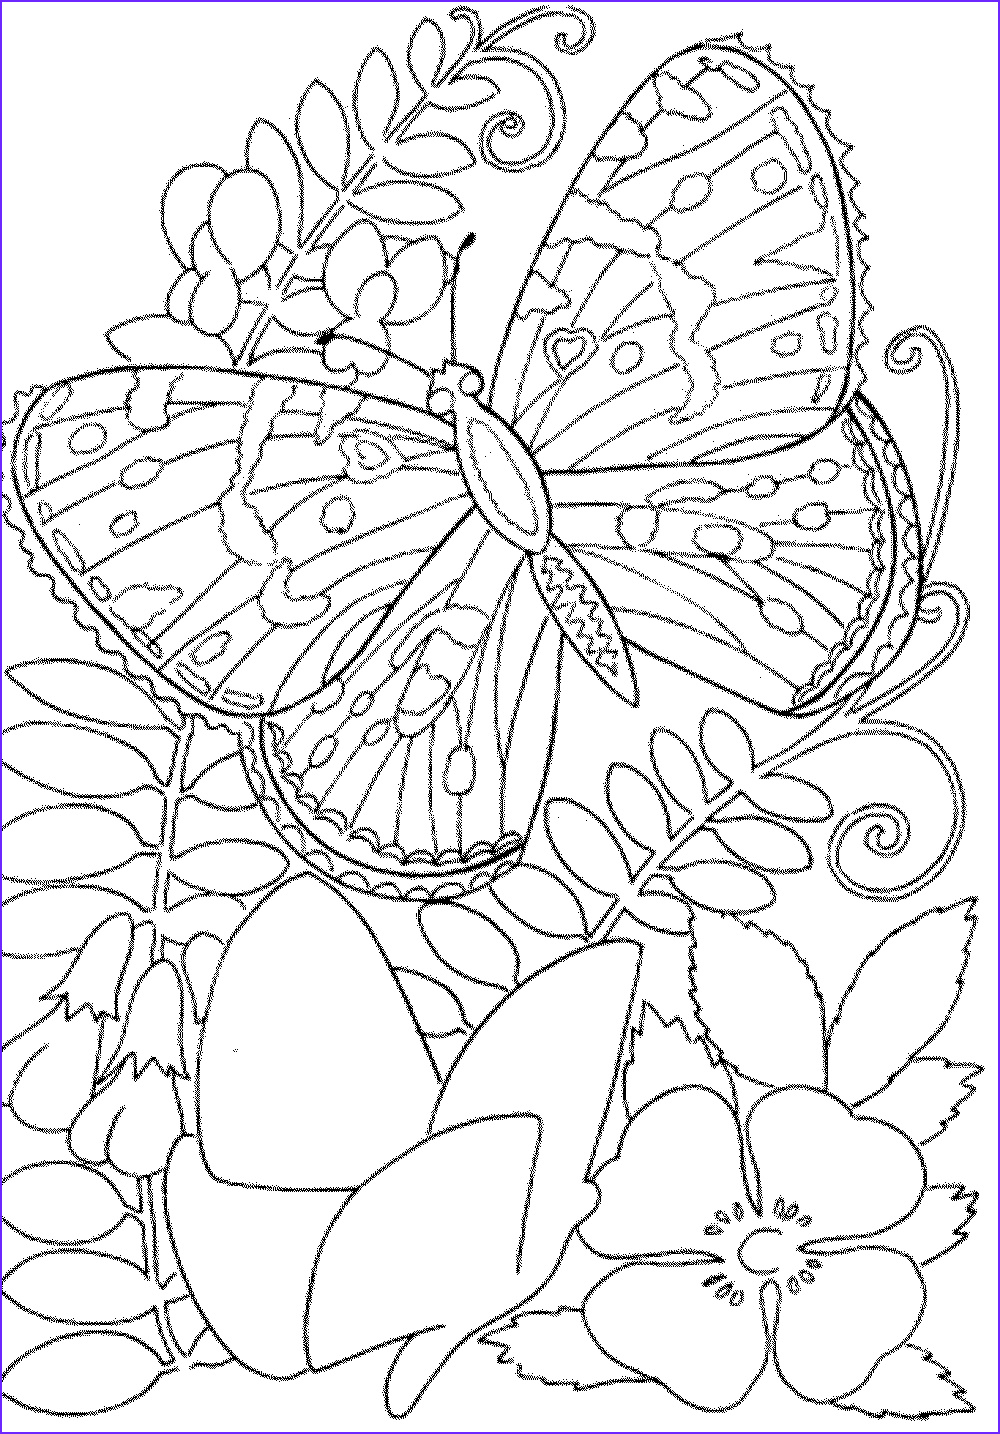 Free Printable Advanced Coloring Pages Beautiful Image 52 Free Printable Advanced Coloring Pages Advanced Skill